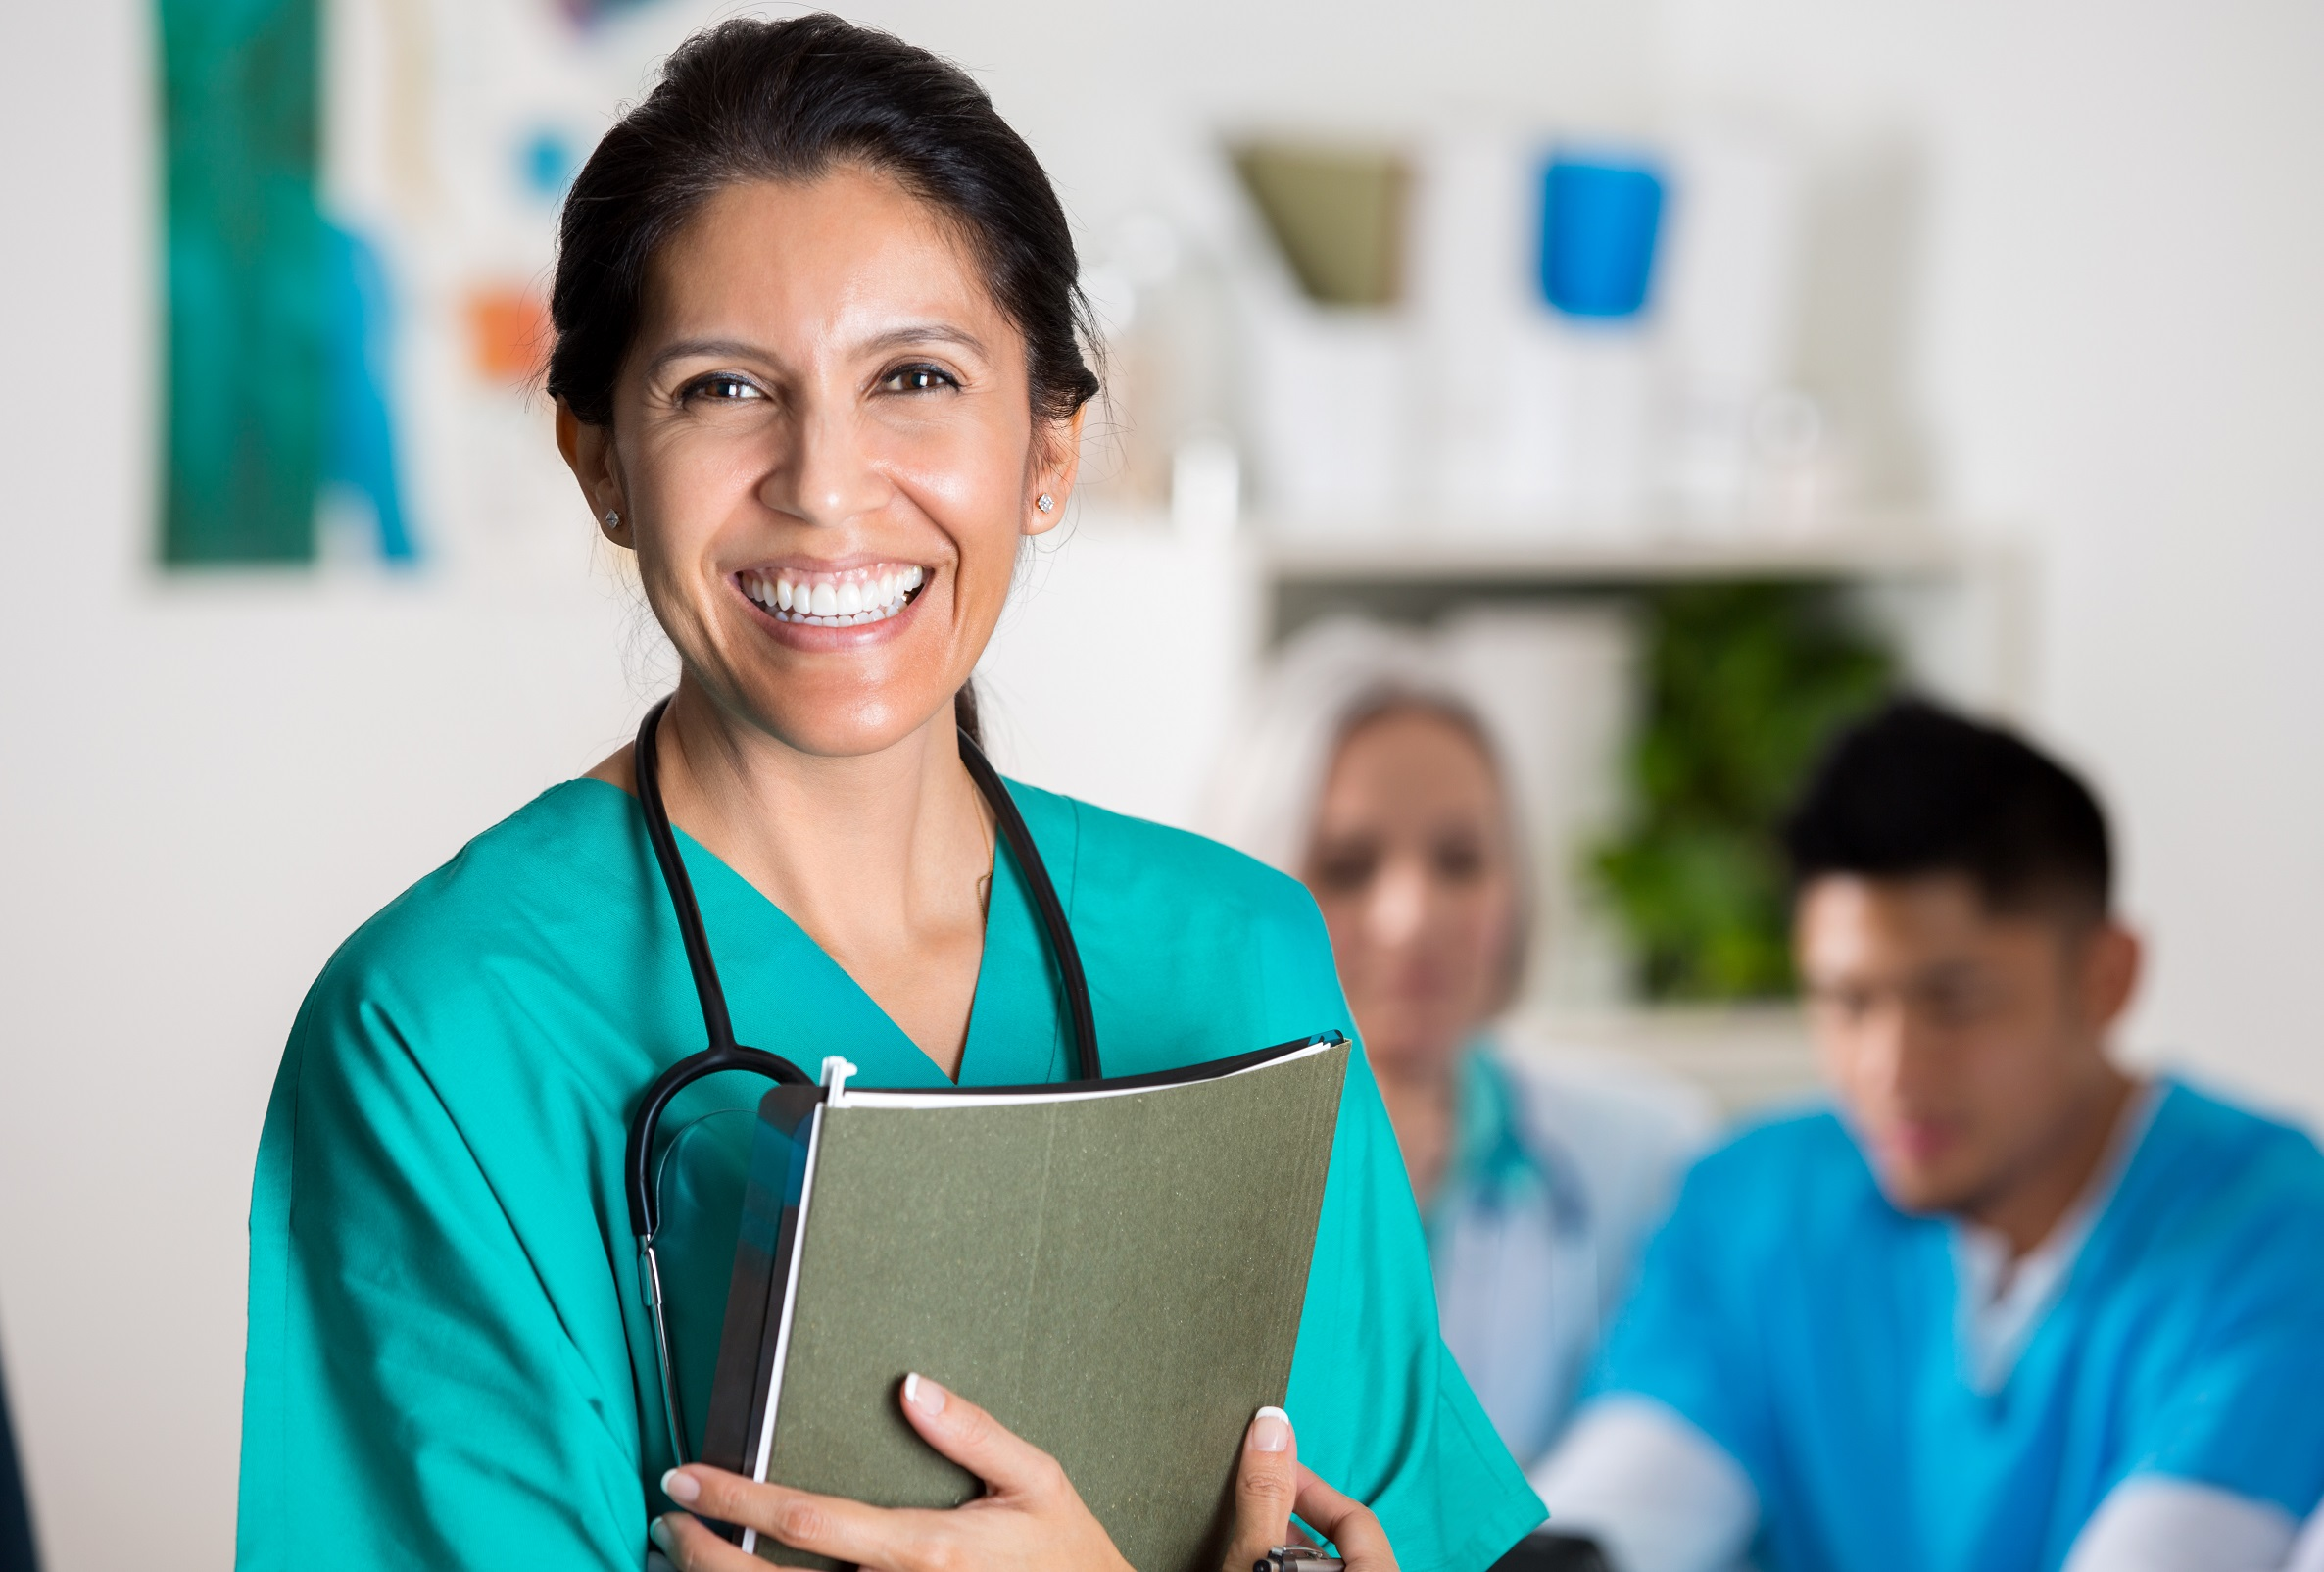 photo of a confident, smiling female doctor